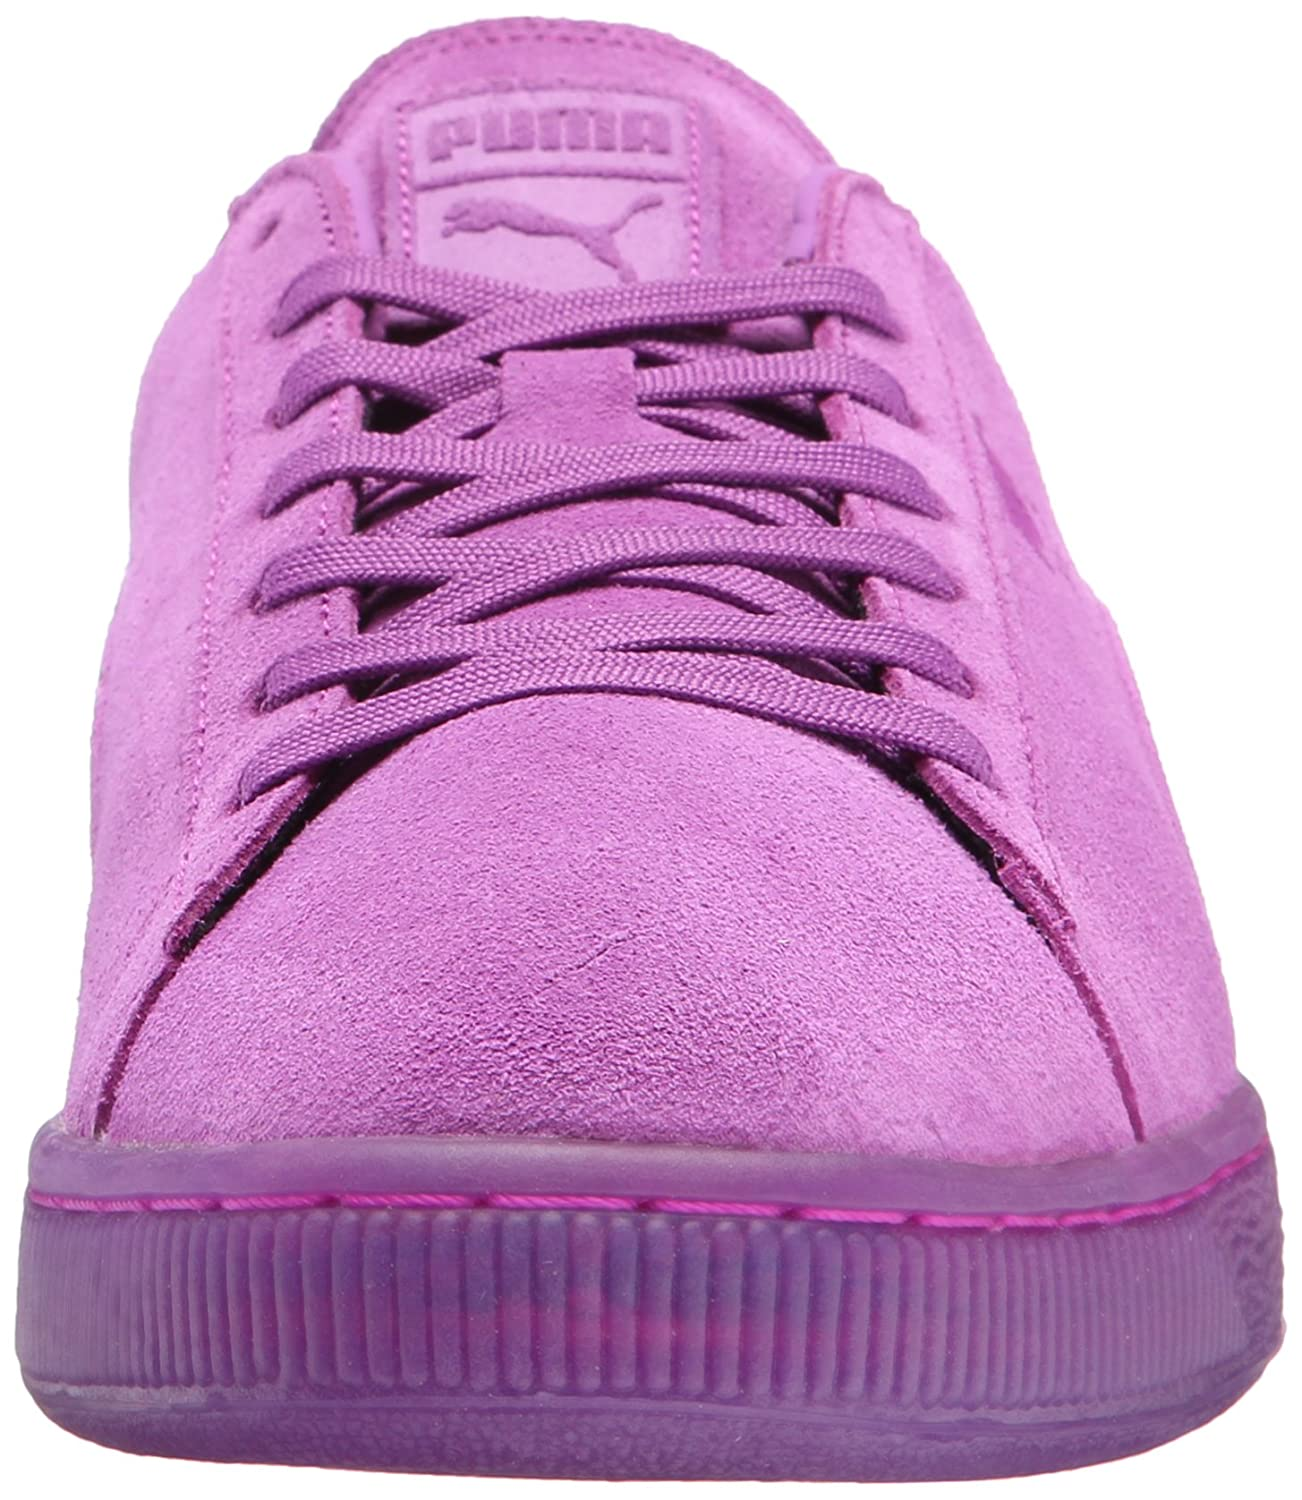 Puma Suede Emboss Iced Fluo Fluo Fluo Fashion Turnschuhe 08647c